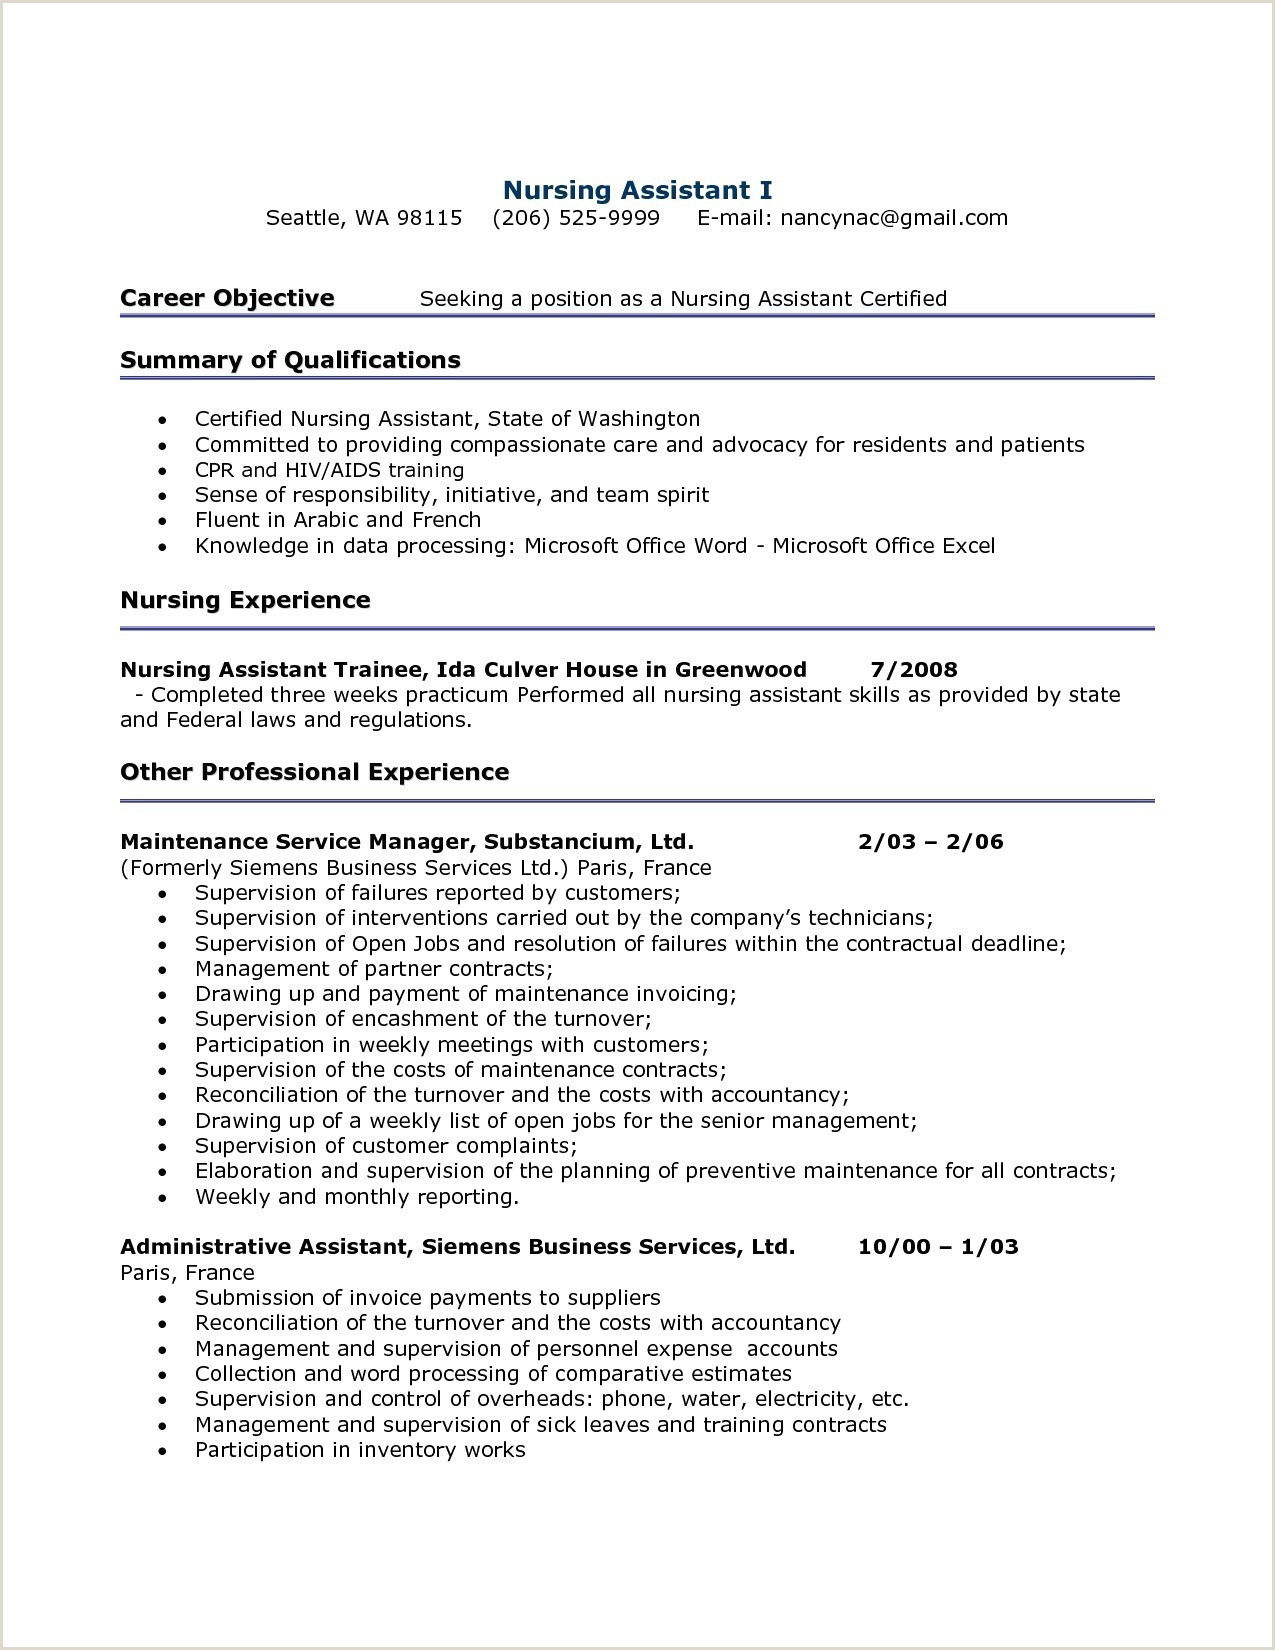 Federal Clerkship Cover Letter Microsoft Word Resume Templates – Salumguilher